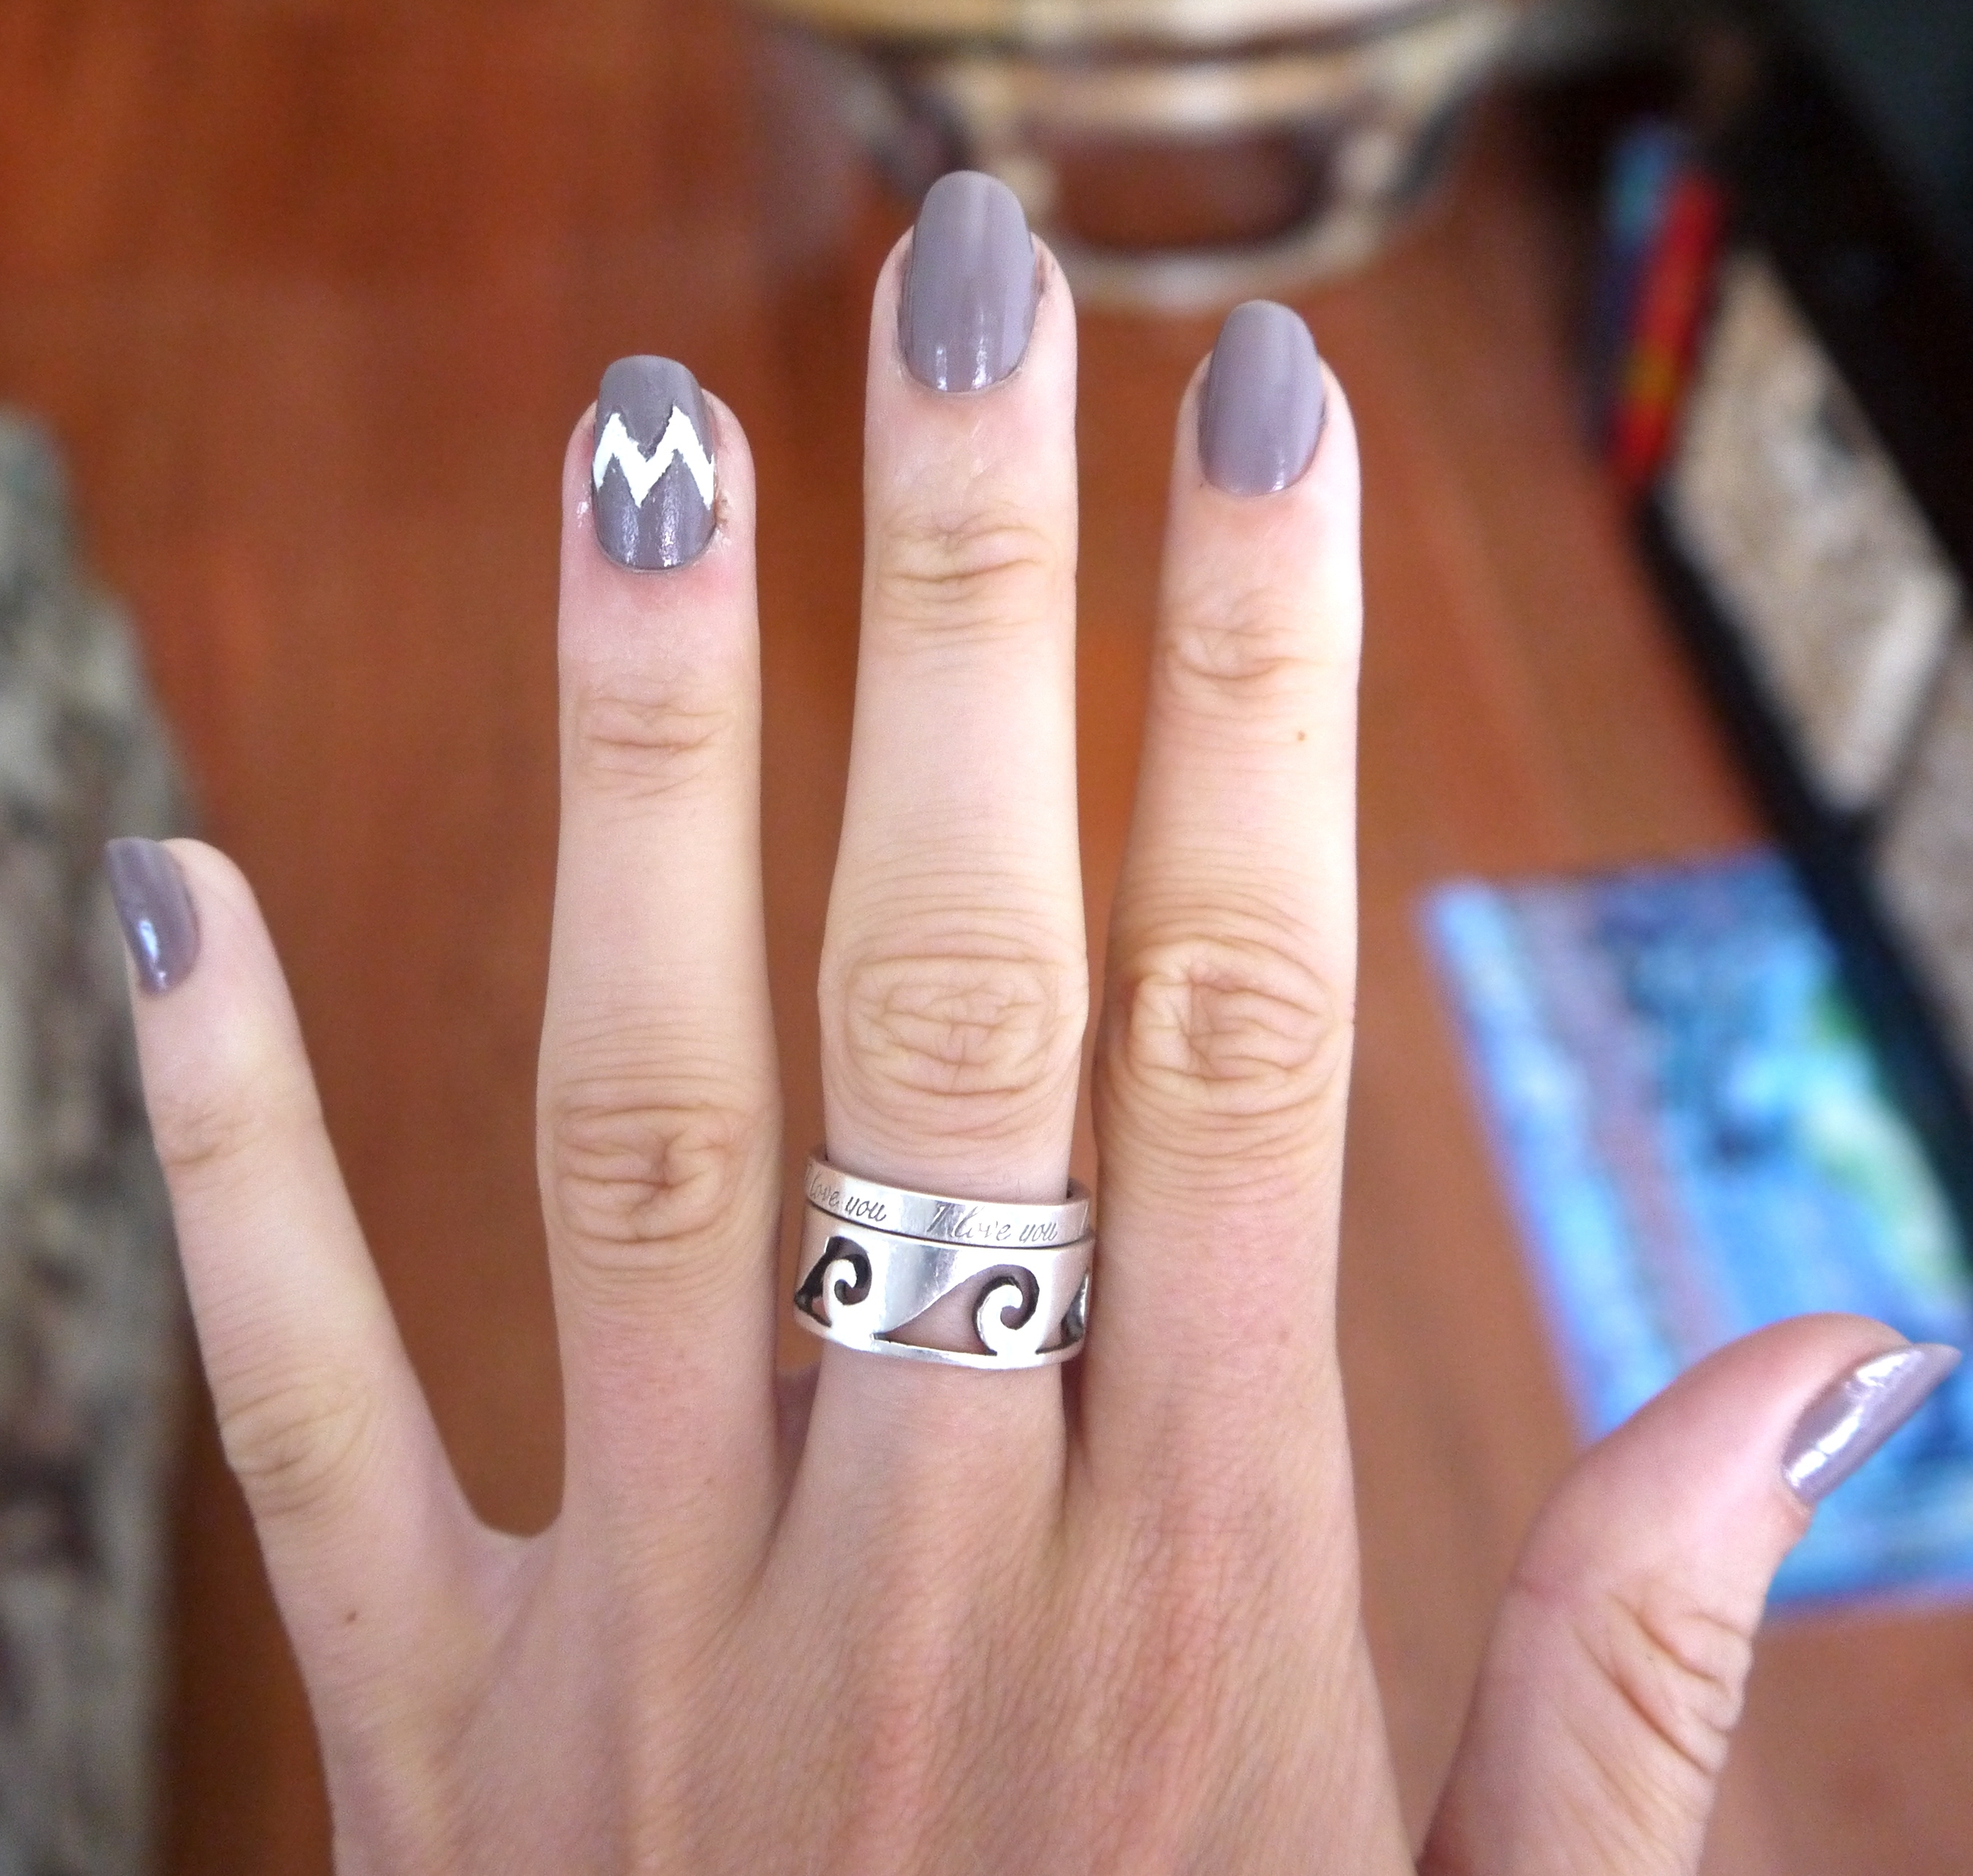 Diy Chevron Nails Tutorial | Pumps & Iron Within Most Up To Date Diy Chevron Rings (View 11 of 15)